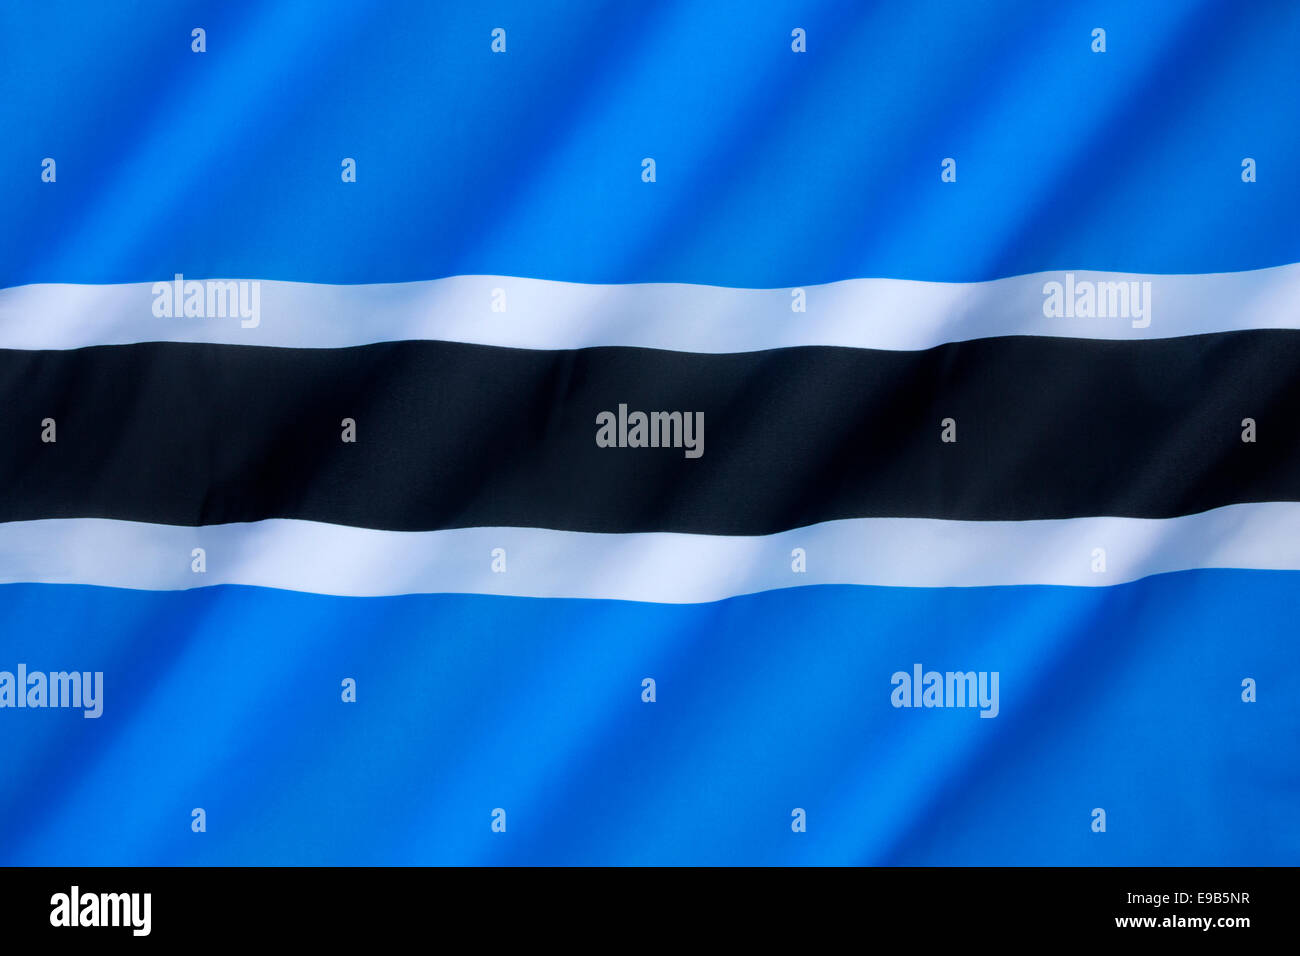 Flag of Botswana - Stock Image